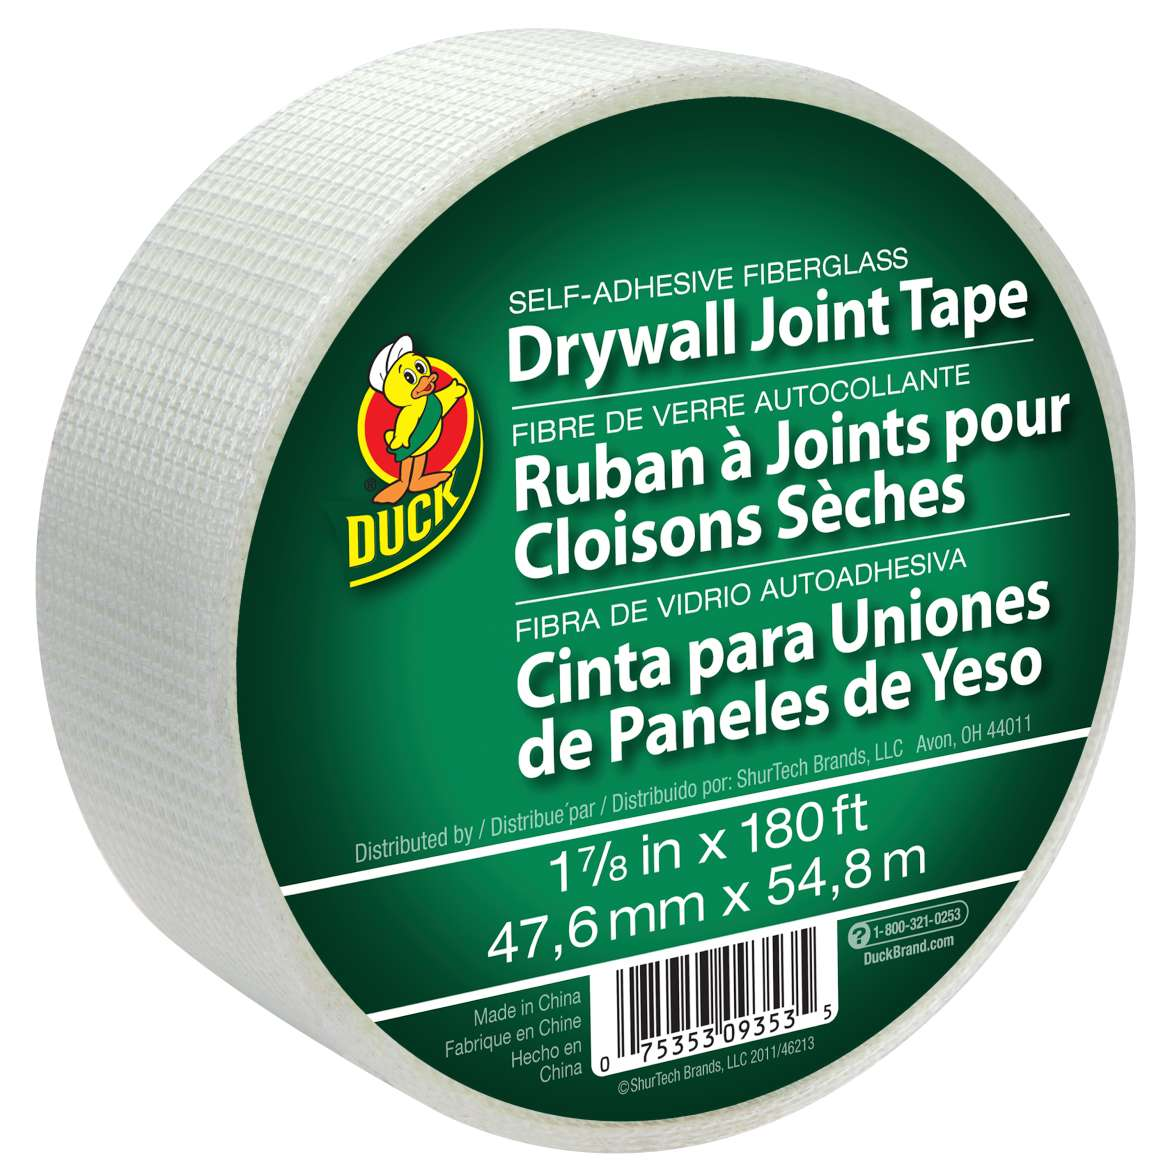 Drywall Joint Tape